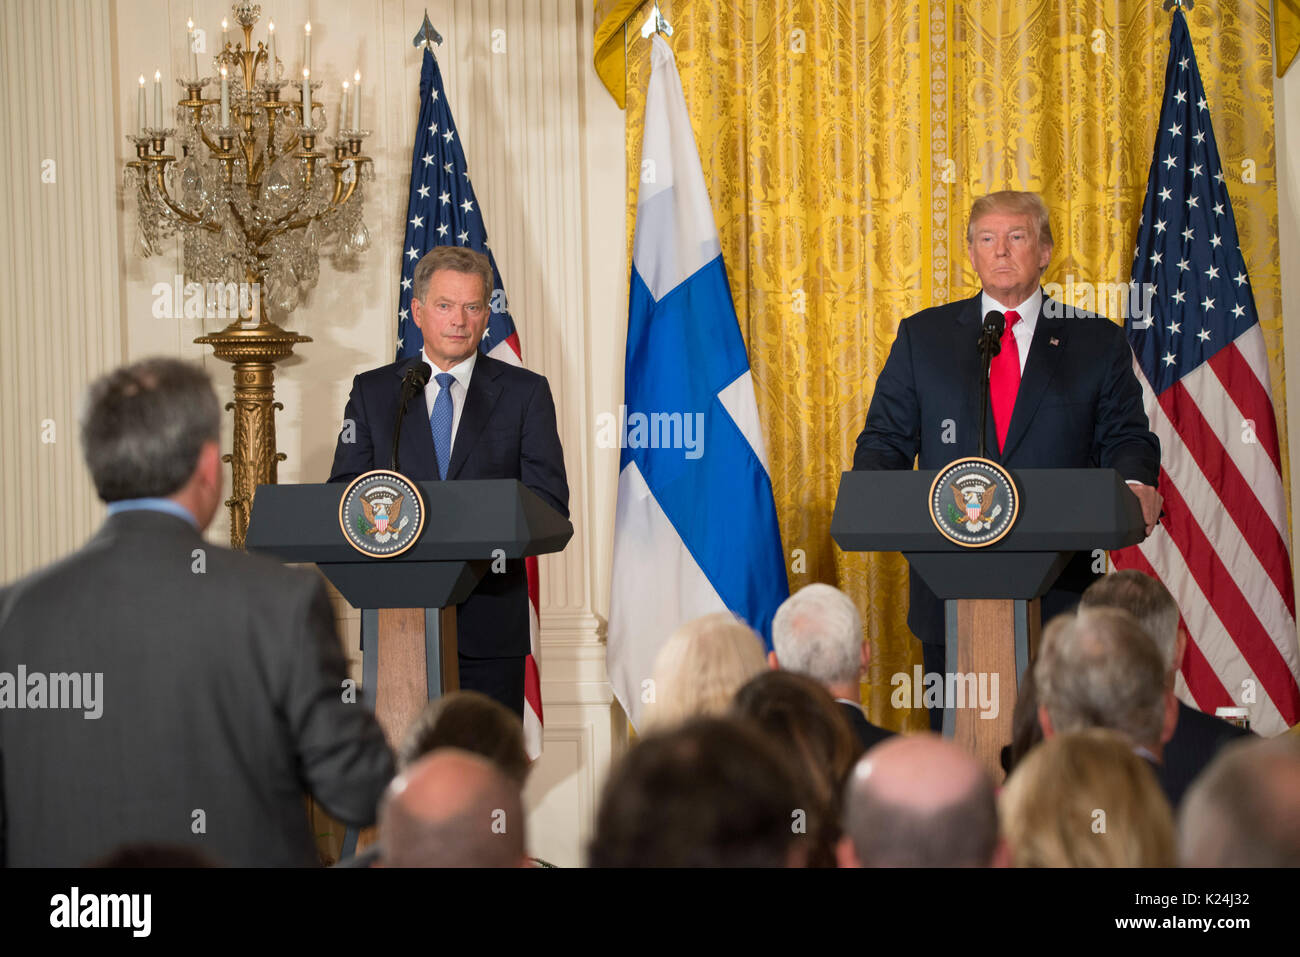 Waahington, DC August 28, 2017, USA: Press Conference with President Donald J. Trump and President Sauli Niinisto of Finland takes place in the East room in the White House. Patsy Lynch/MediaPunch - Stock Image